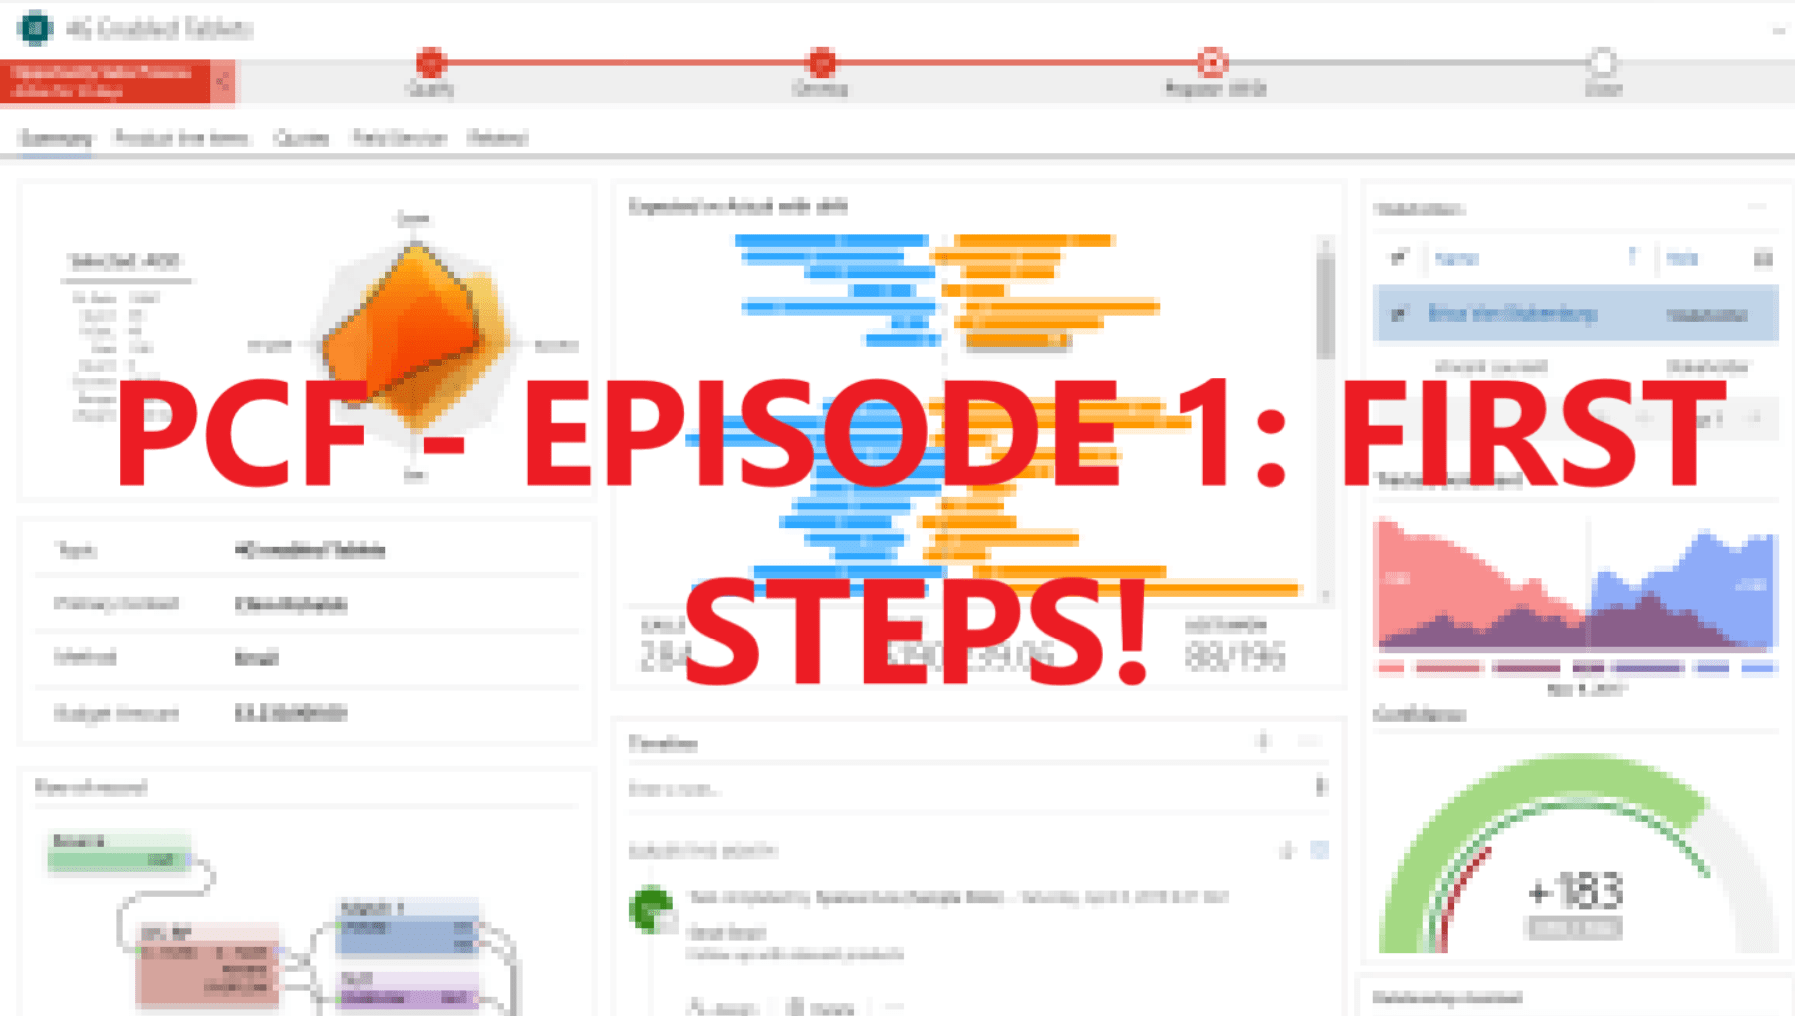 PCF – EPISODE 1 : First Steps!